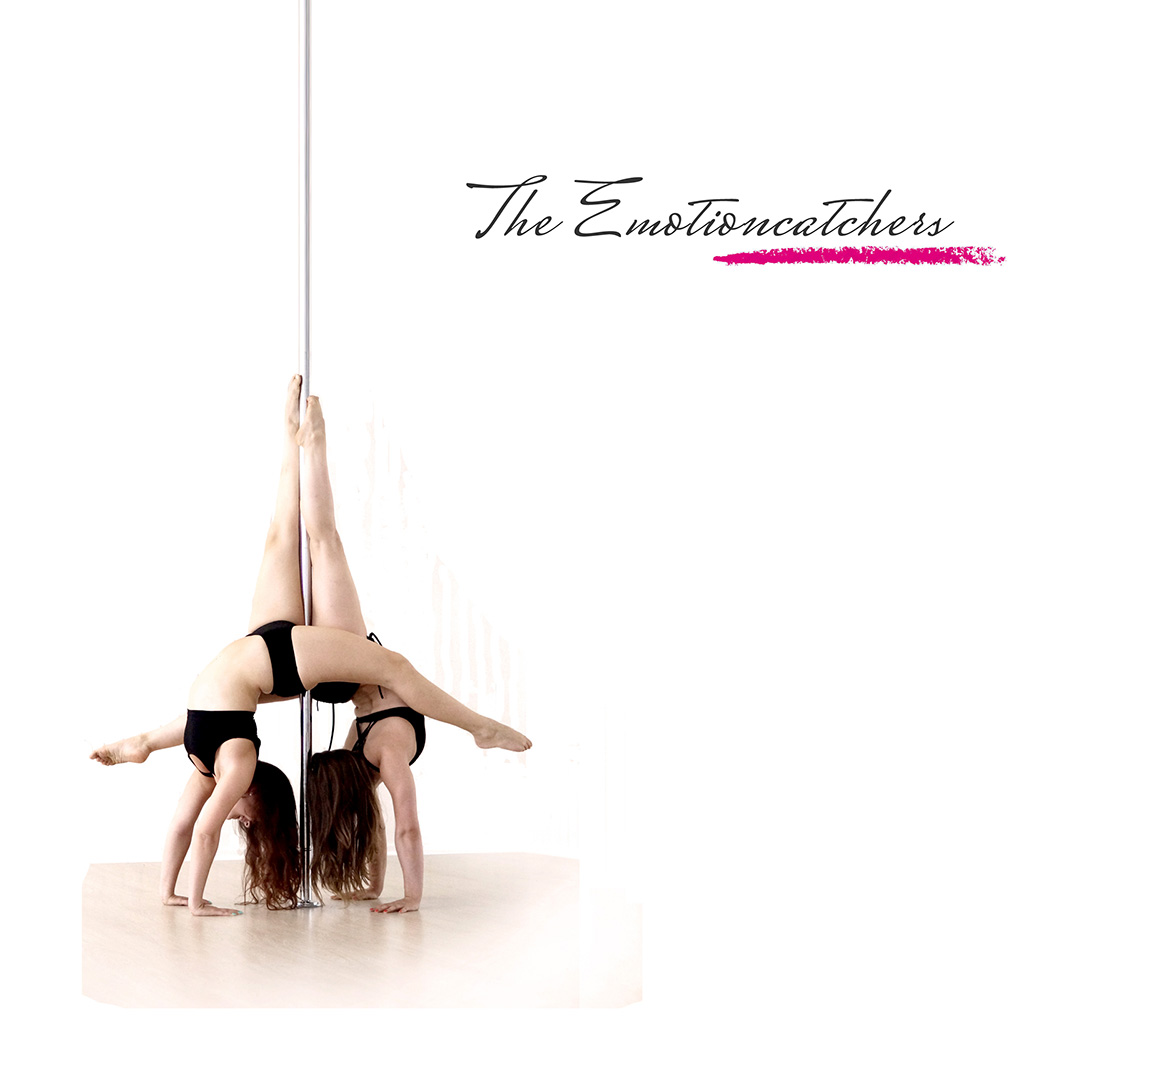 Startseite von The Emotioncatchers - Pole Dance